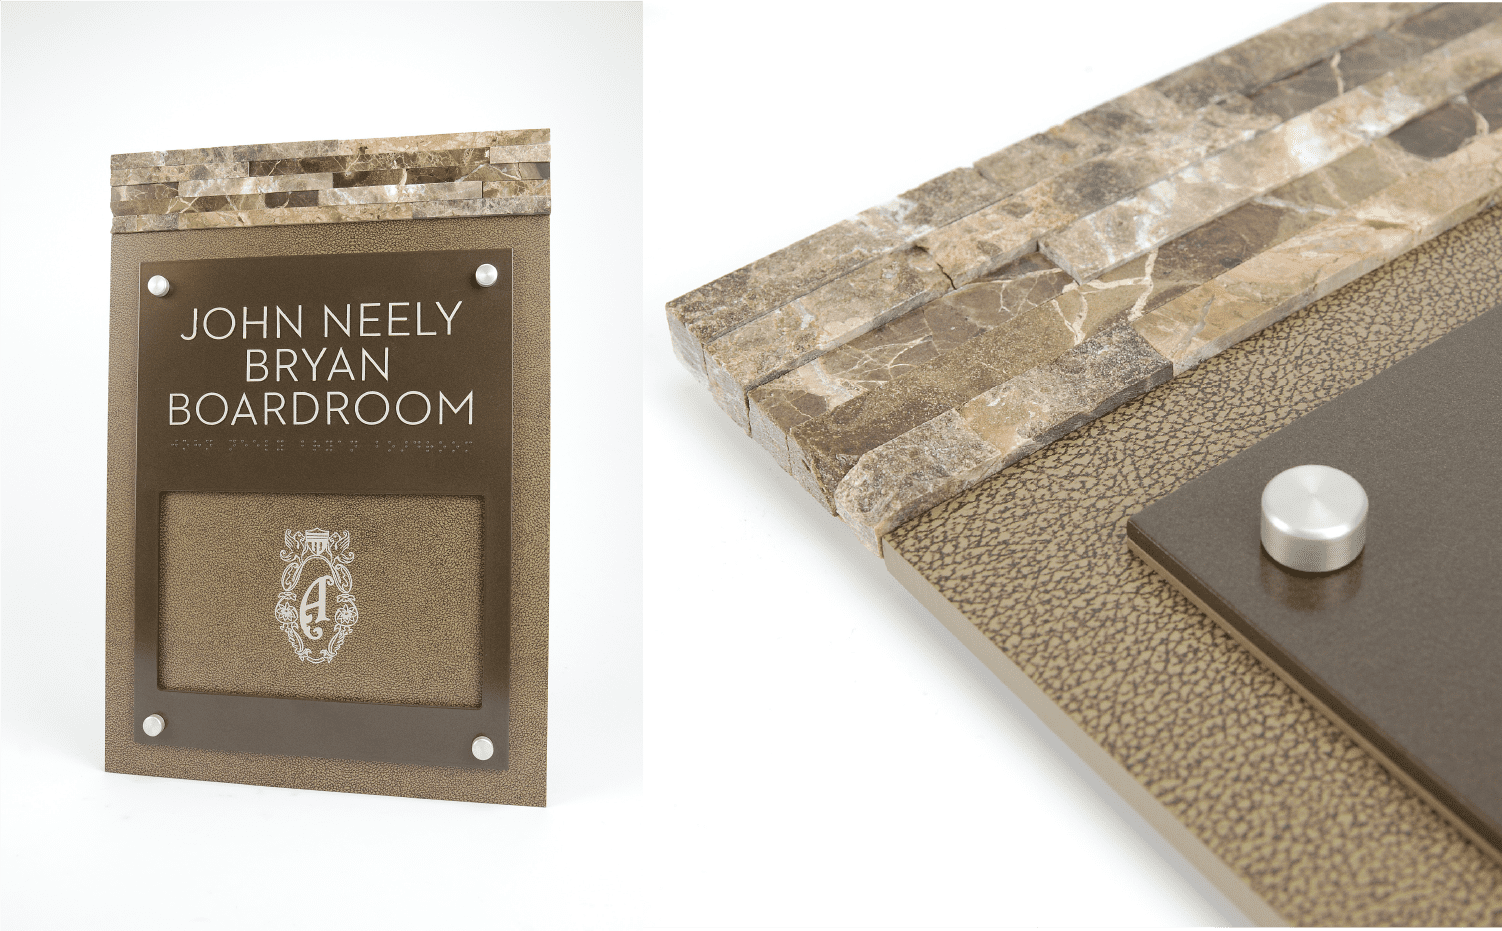 Brand Signs for Hotels - Boardroom & Hotel Room Signs with Stone Edges.